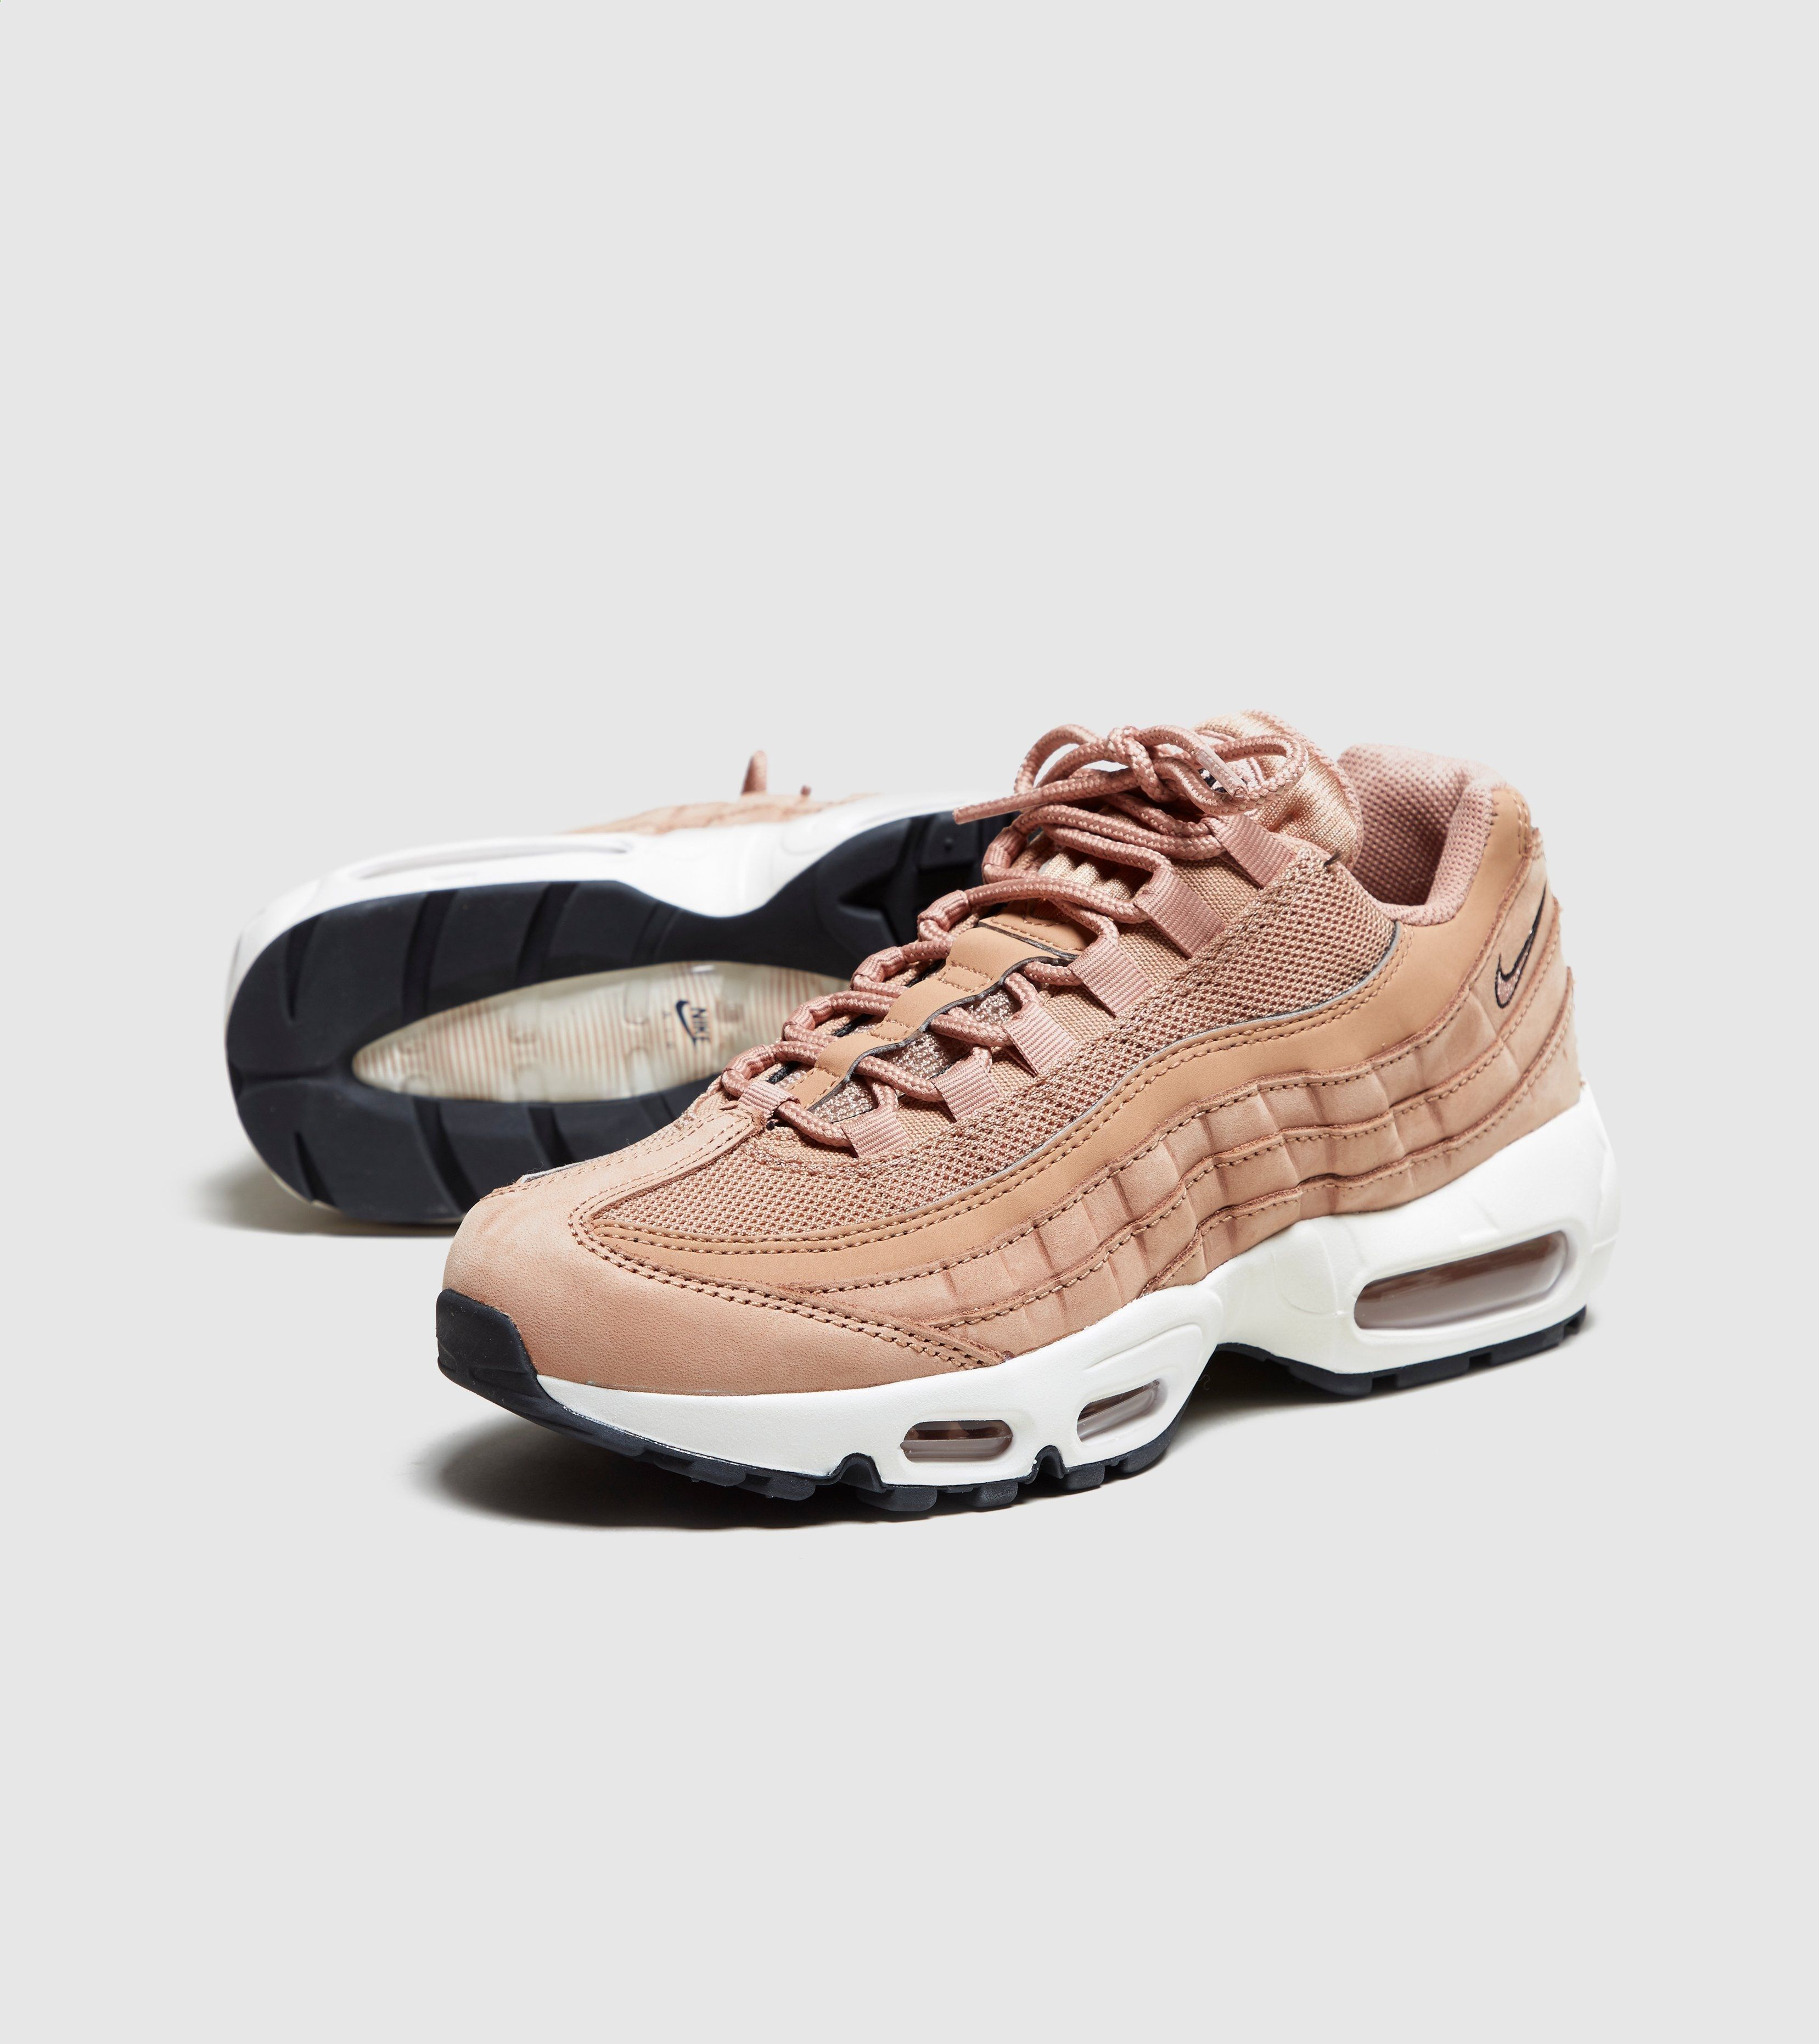 detailed look e78e8 f68e1 Nike Air Max 95 OG Womens - find out more on our site. Find the freshest in  trainers and clothing online now.